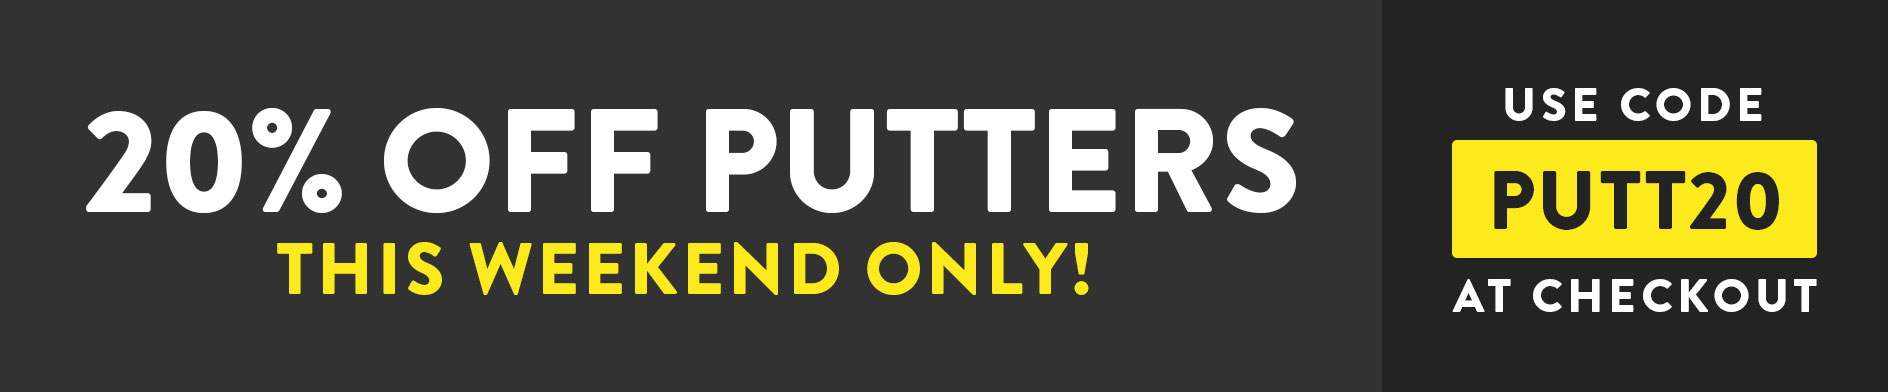 cat-page-putter-promo-1.jpg